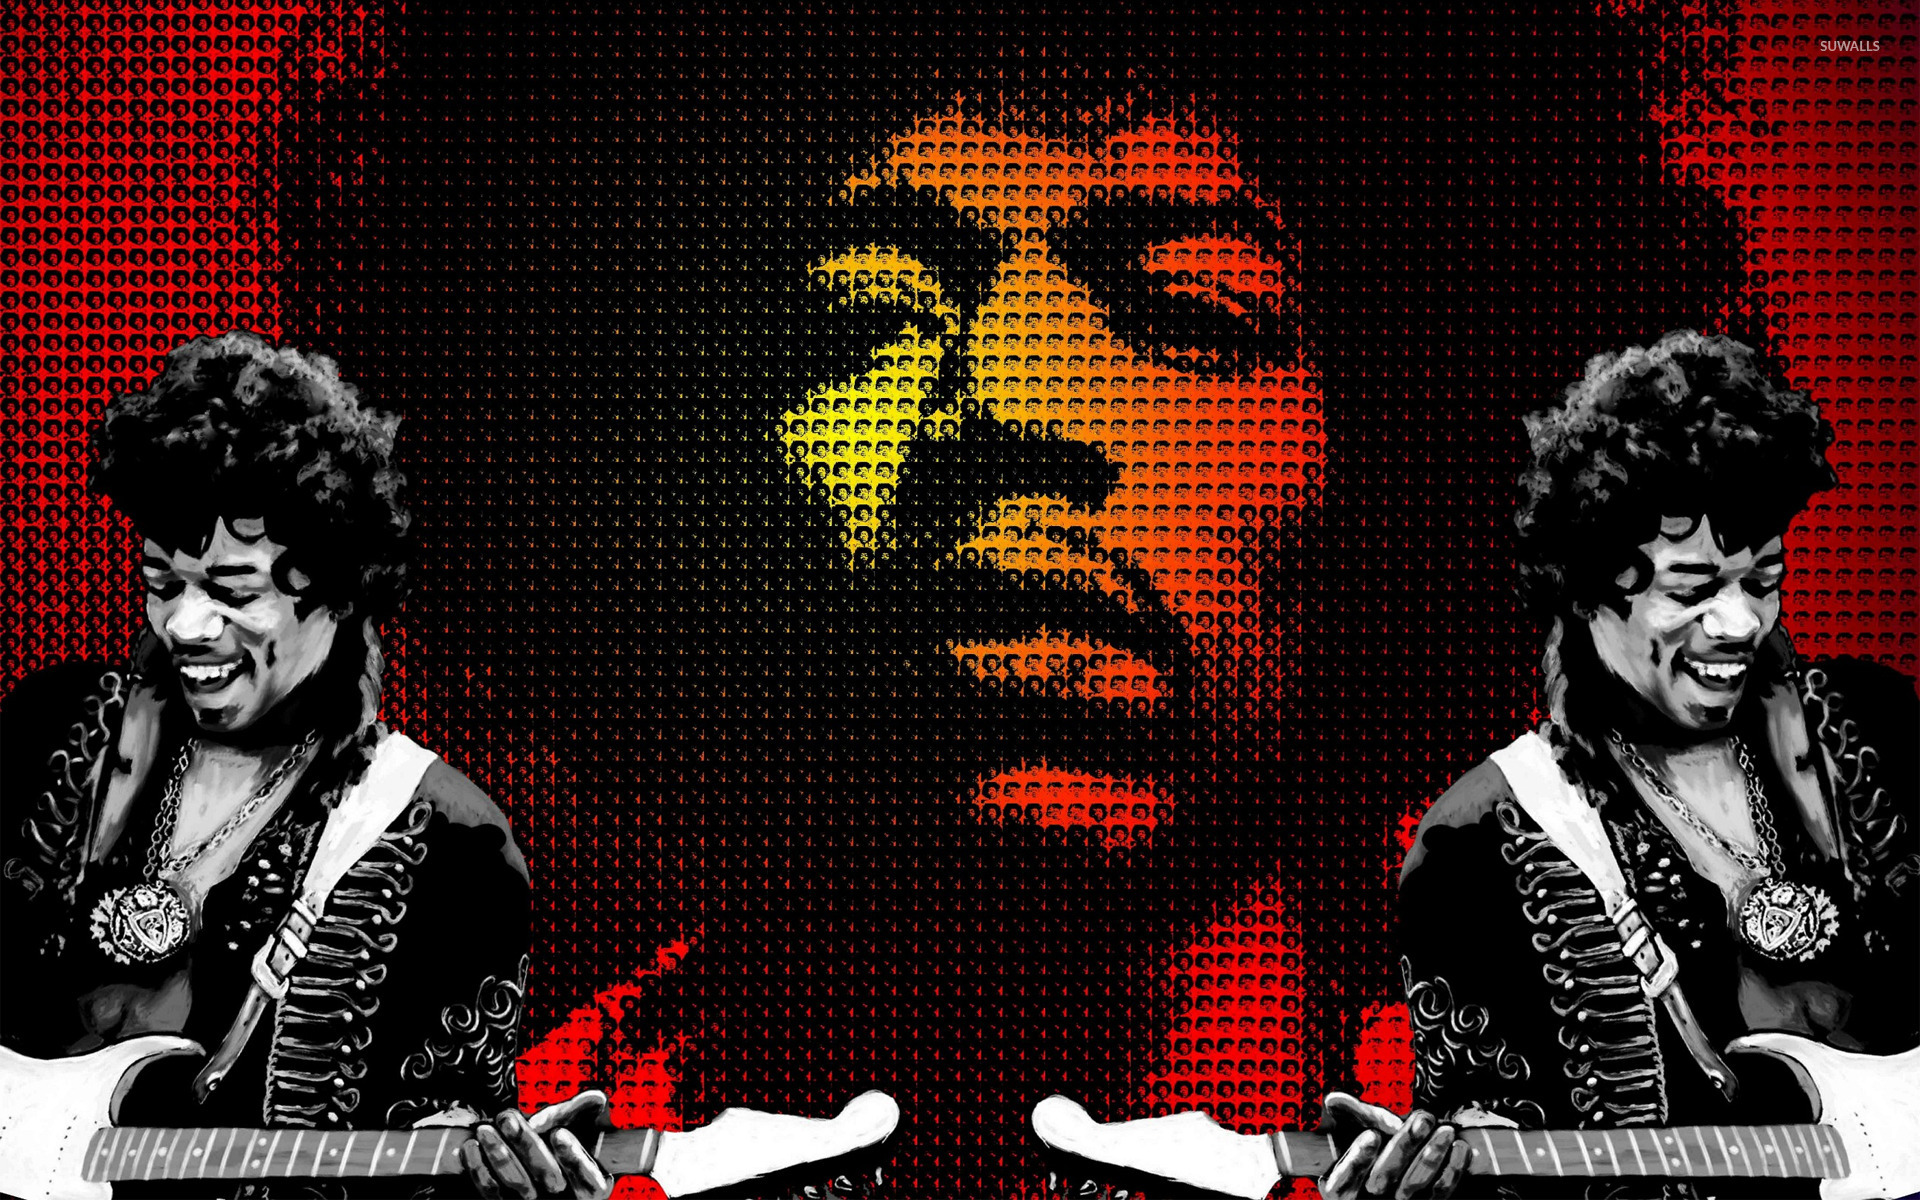 jimi hendrix wallpaper 10-#7